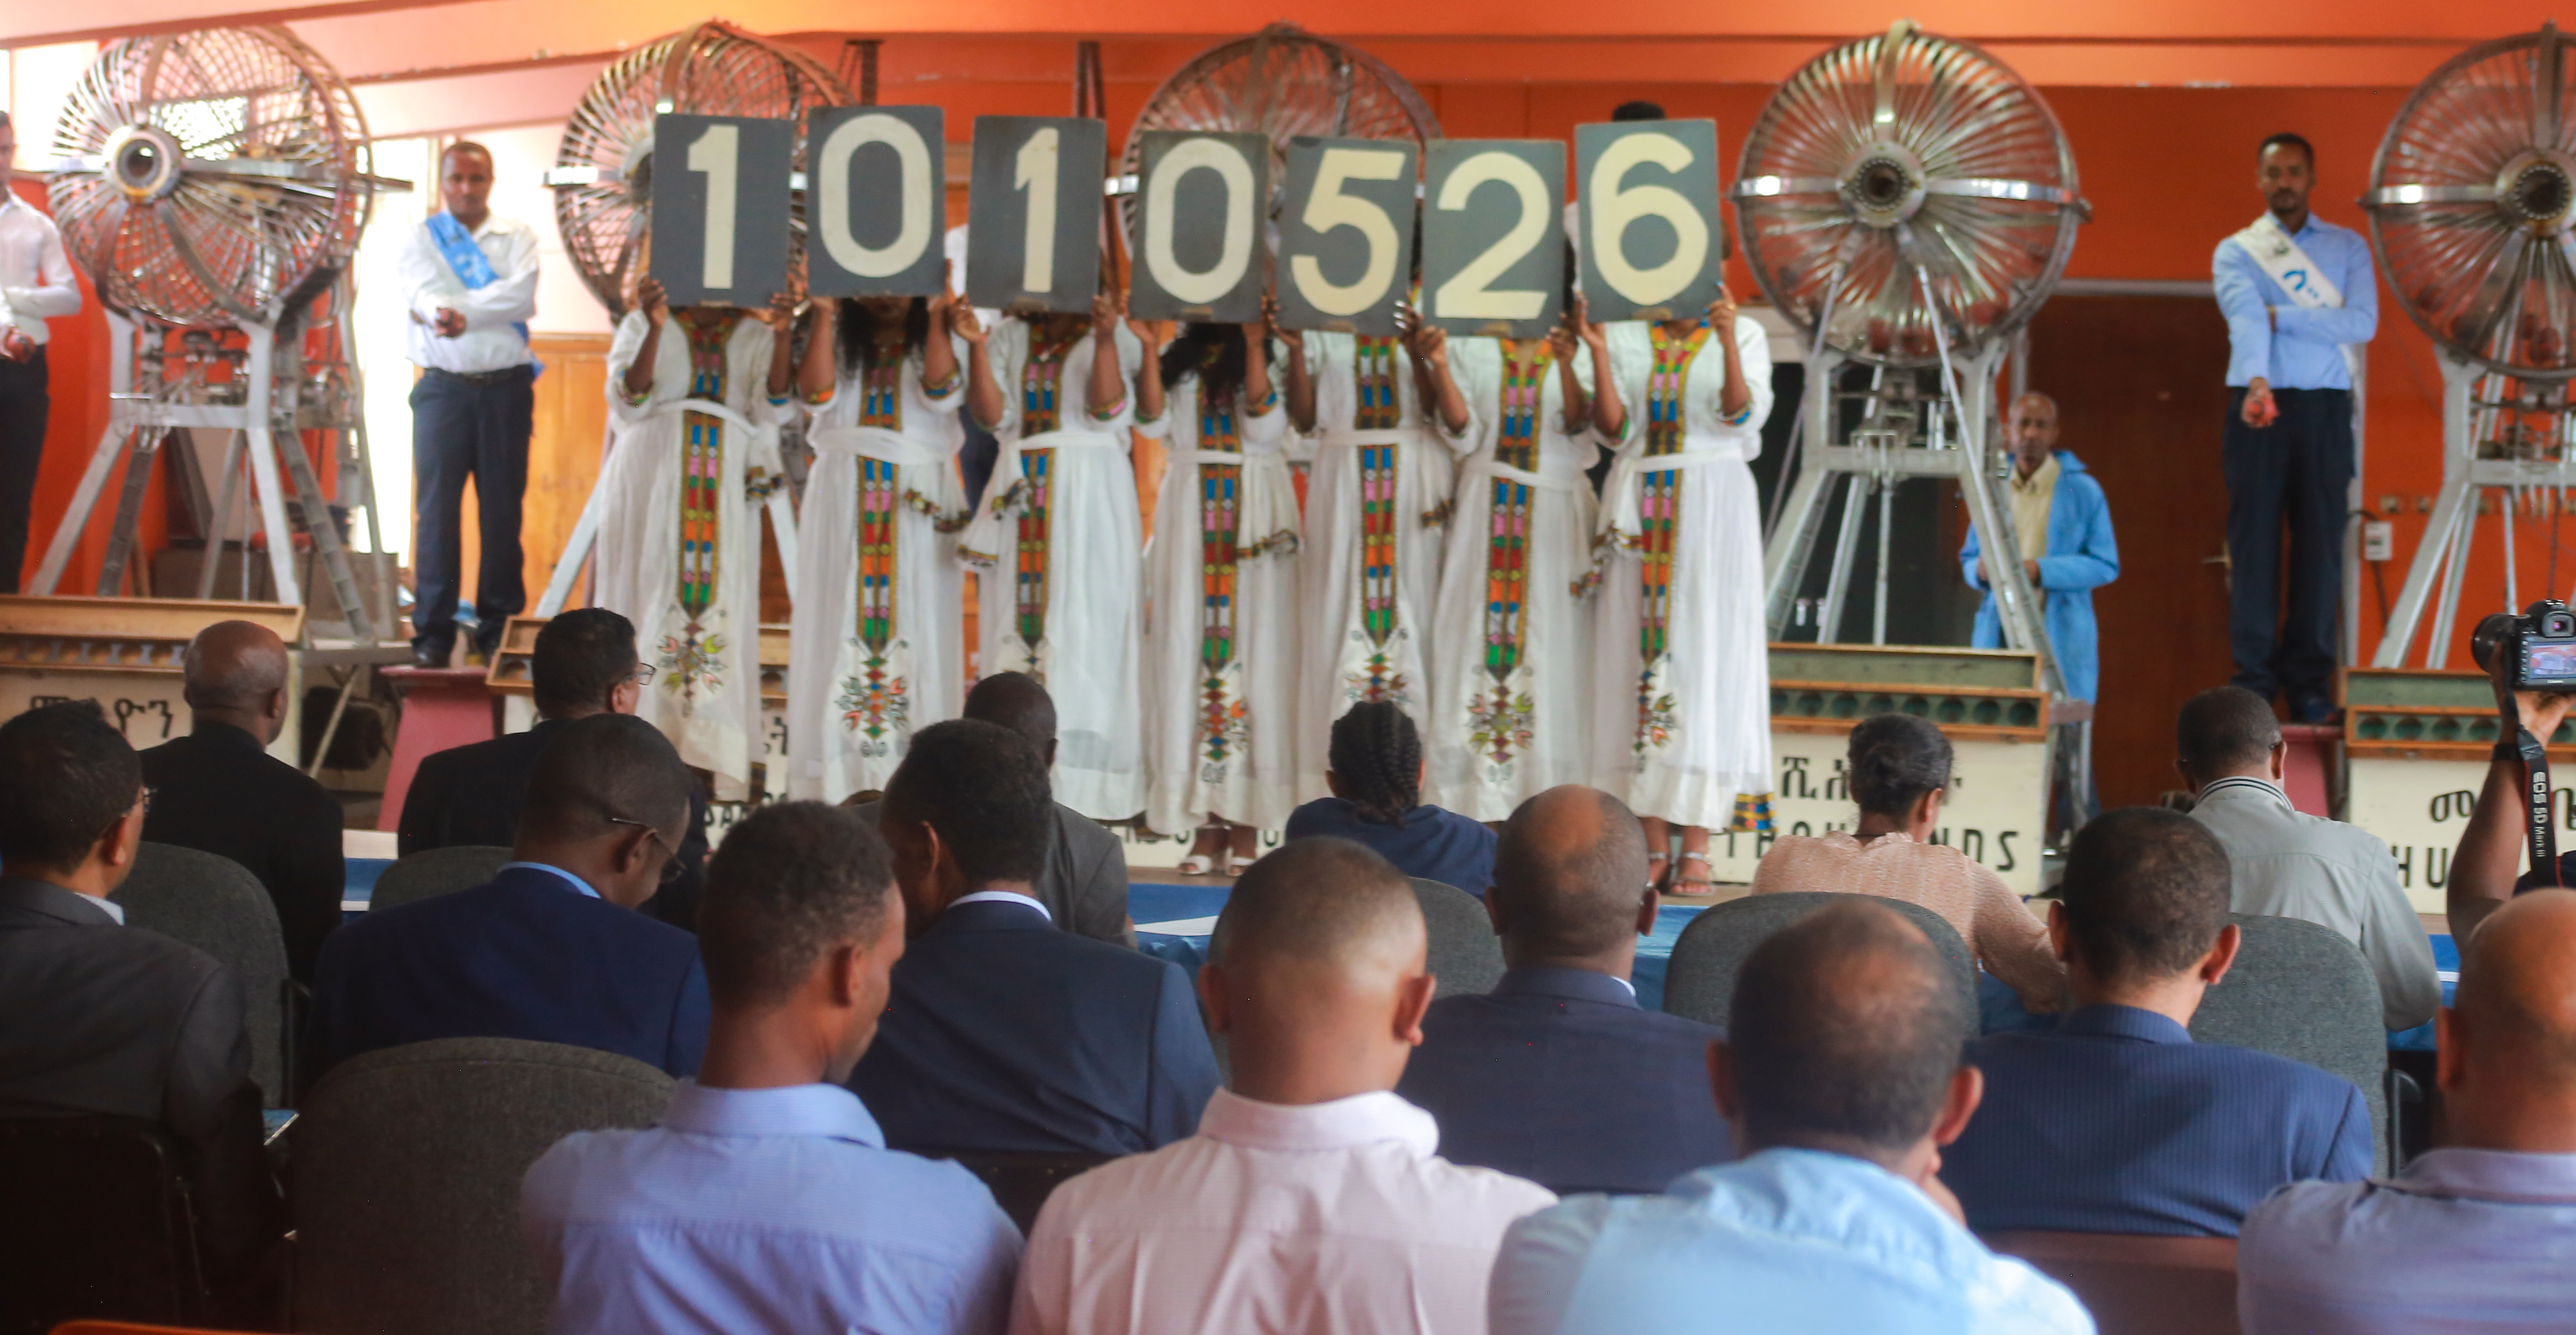 Partial view of the lottery drawing ceremony